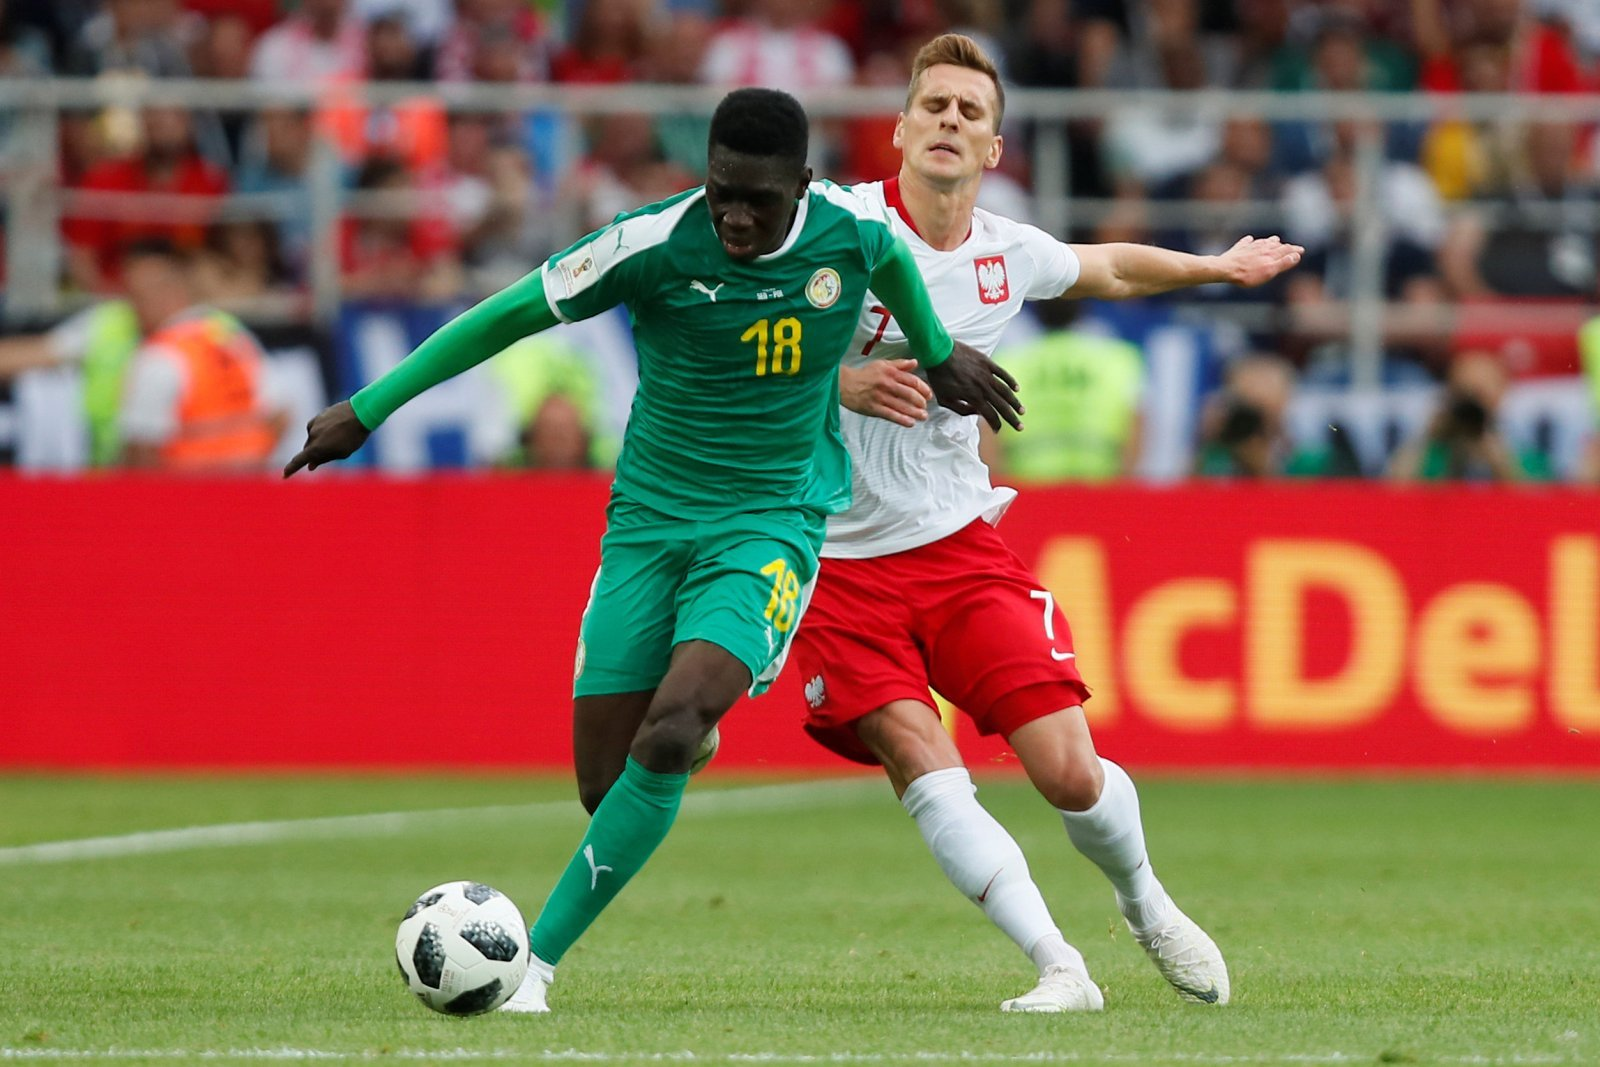 Ismaila Sarr would give Arsenal that attacking edge